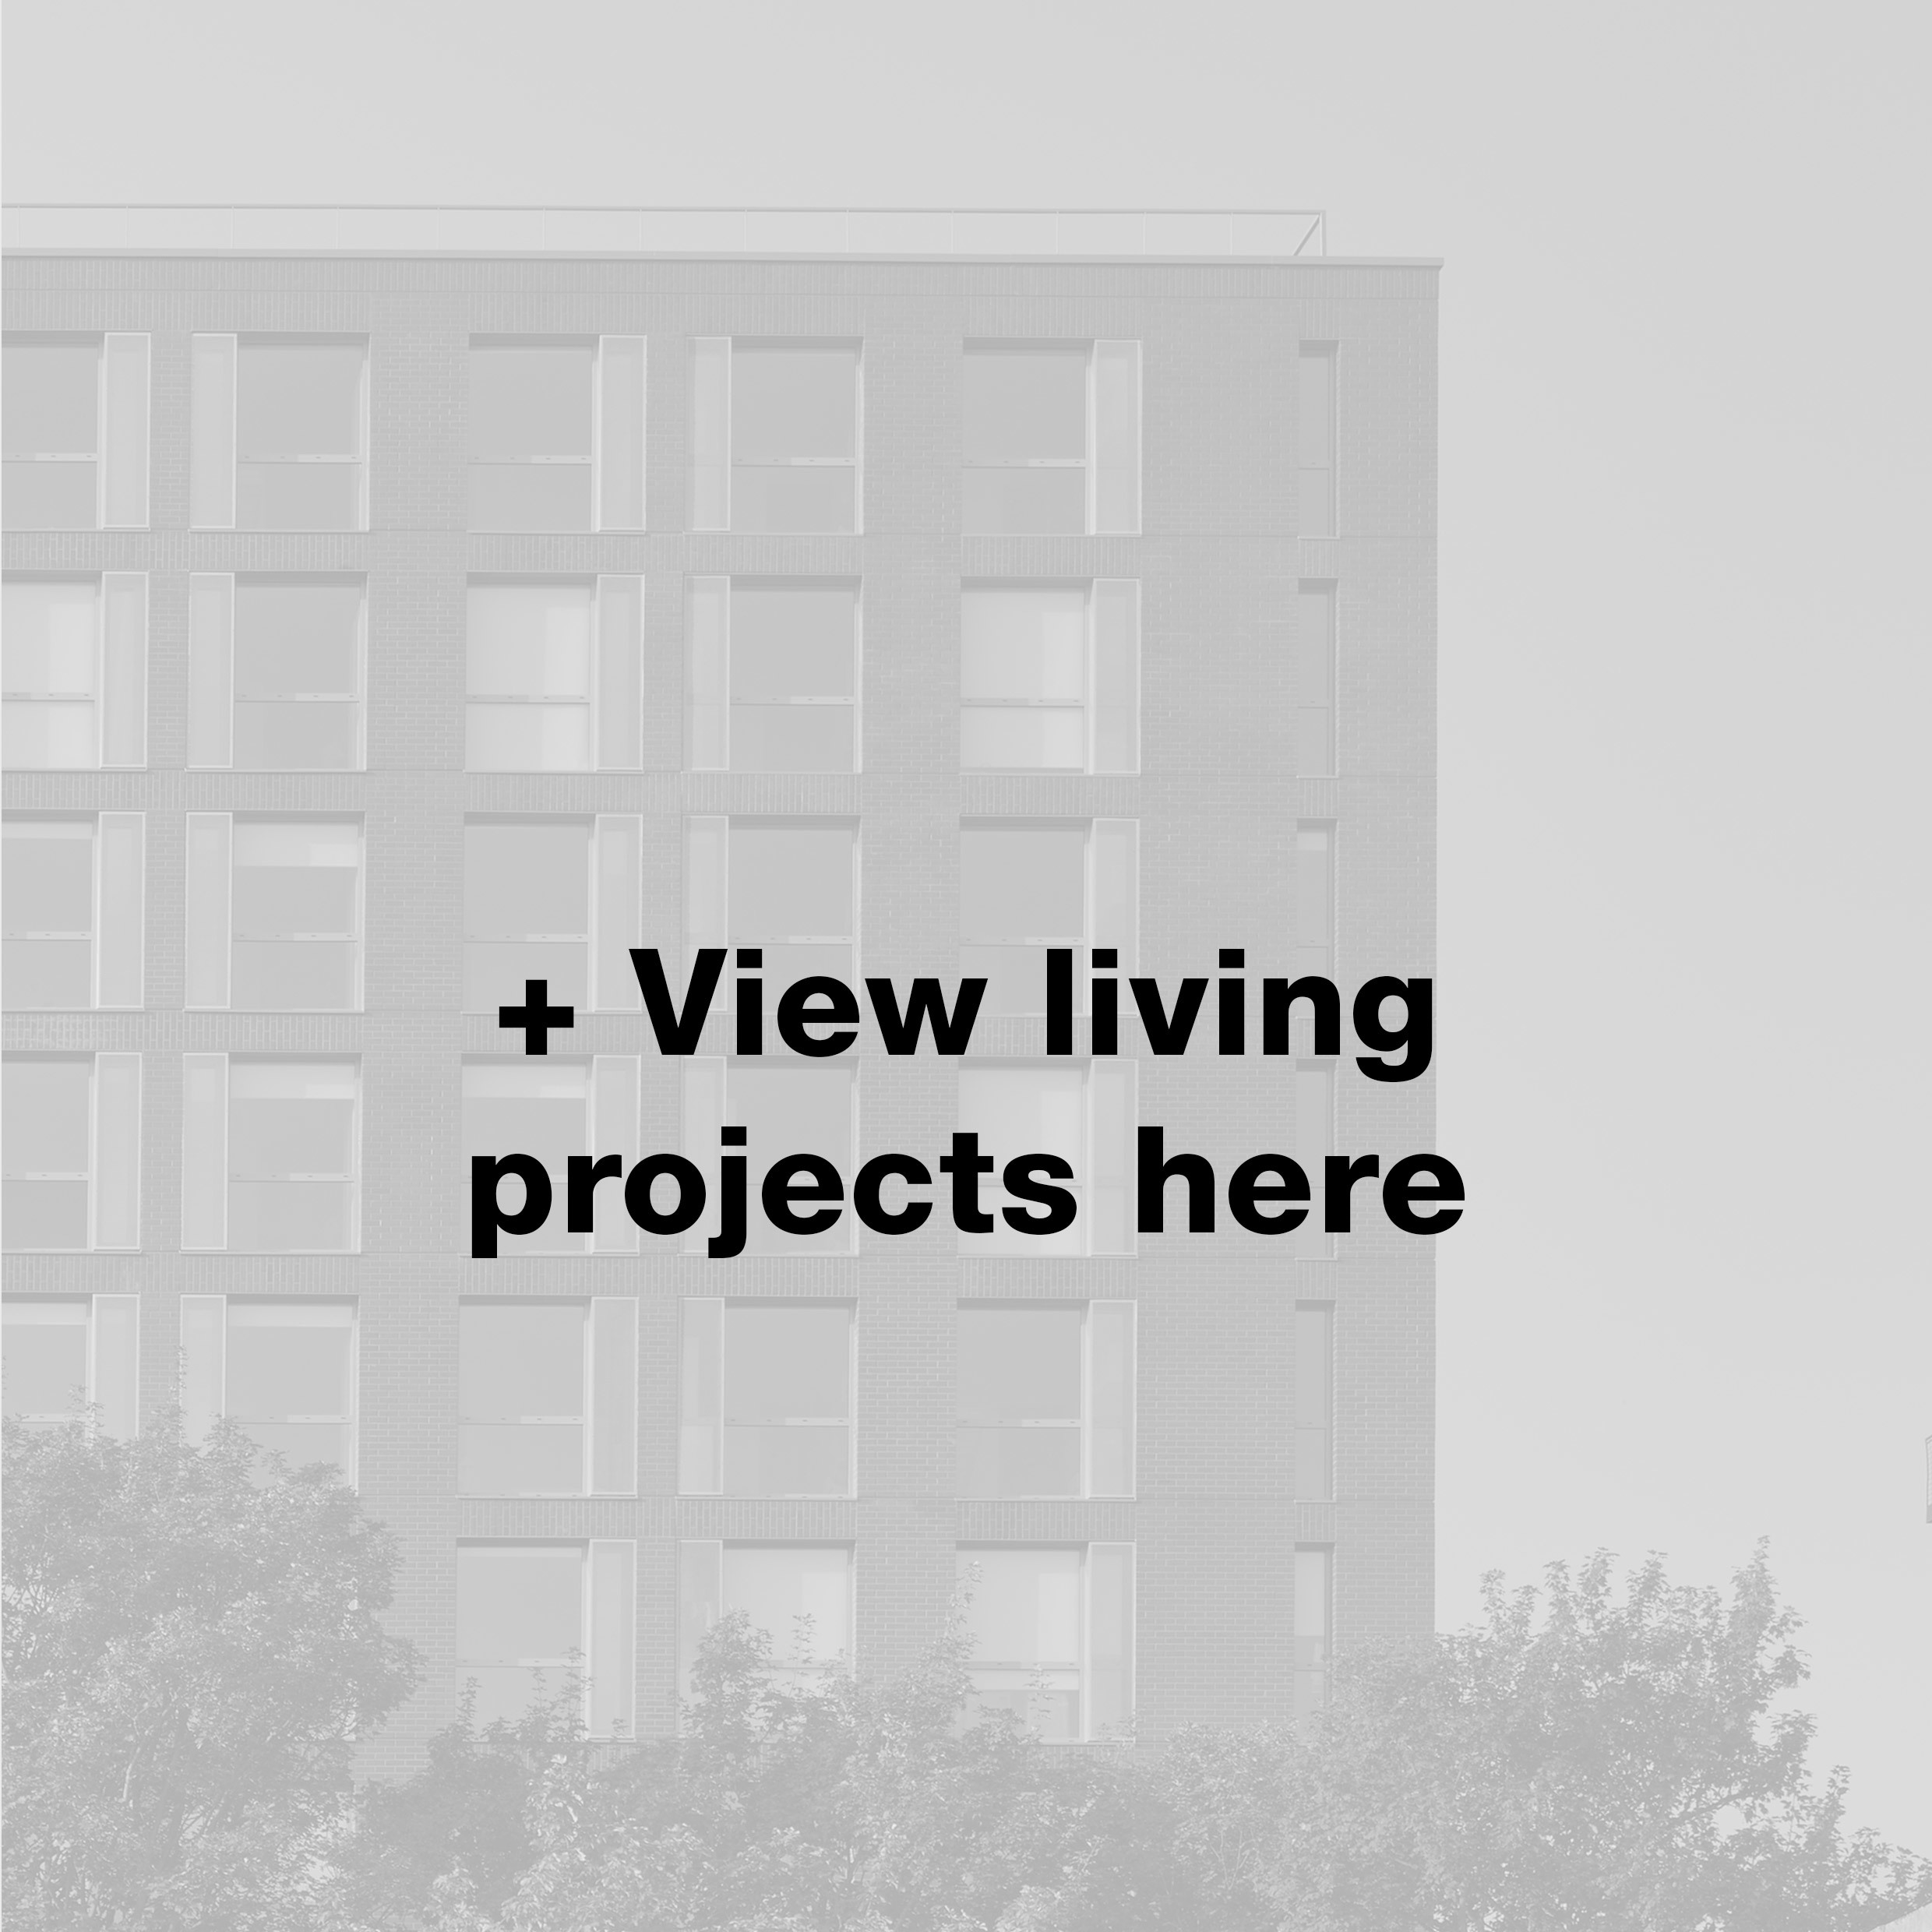 living-projects-here.jpg#asset:10531